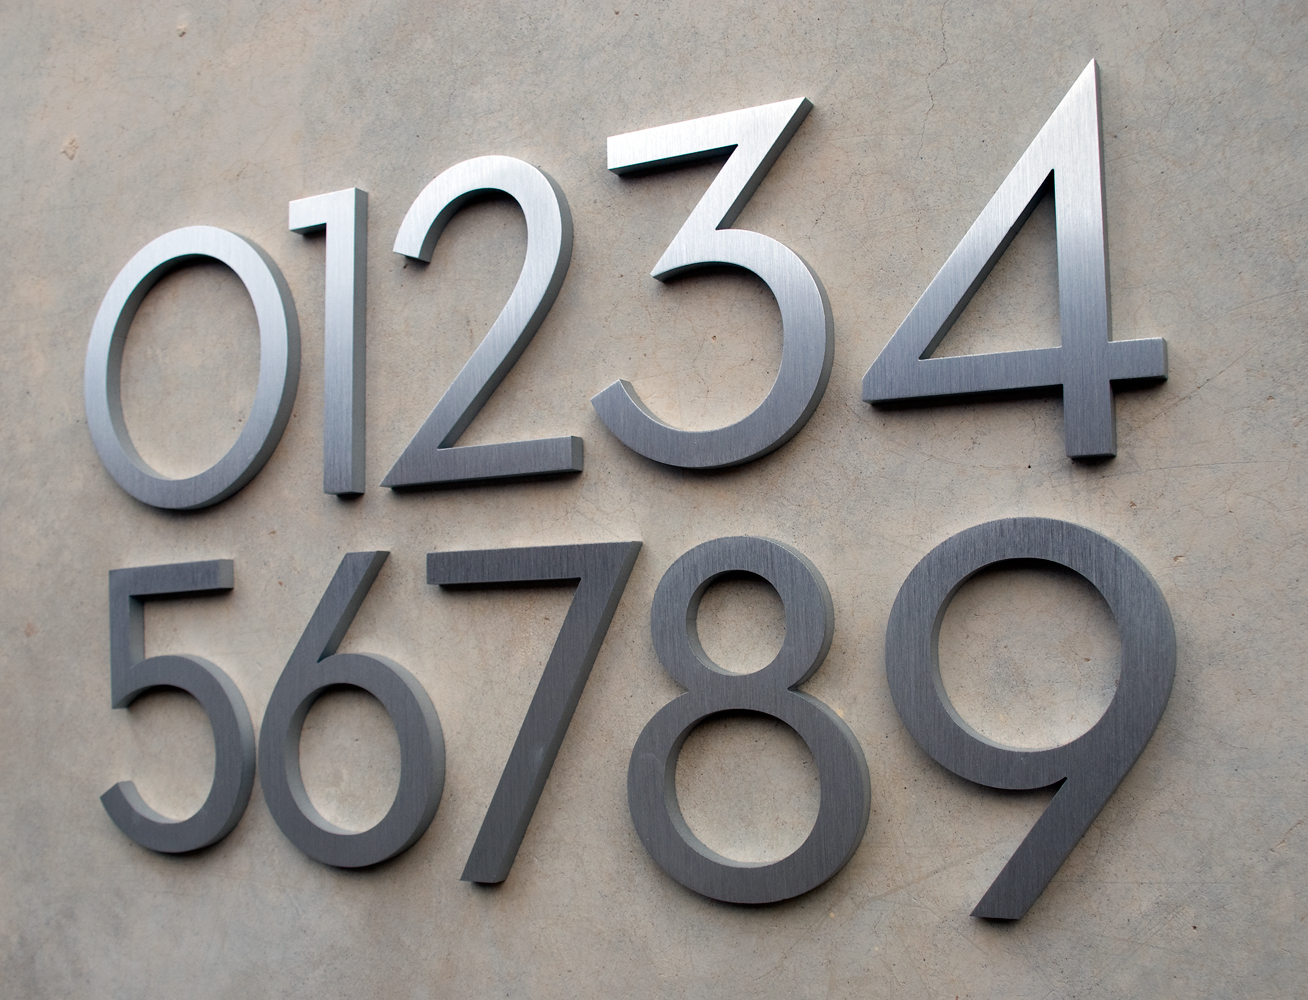 Pin modern house numbers stainless steel on pinterest